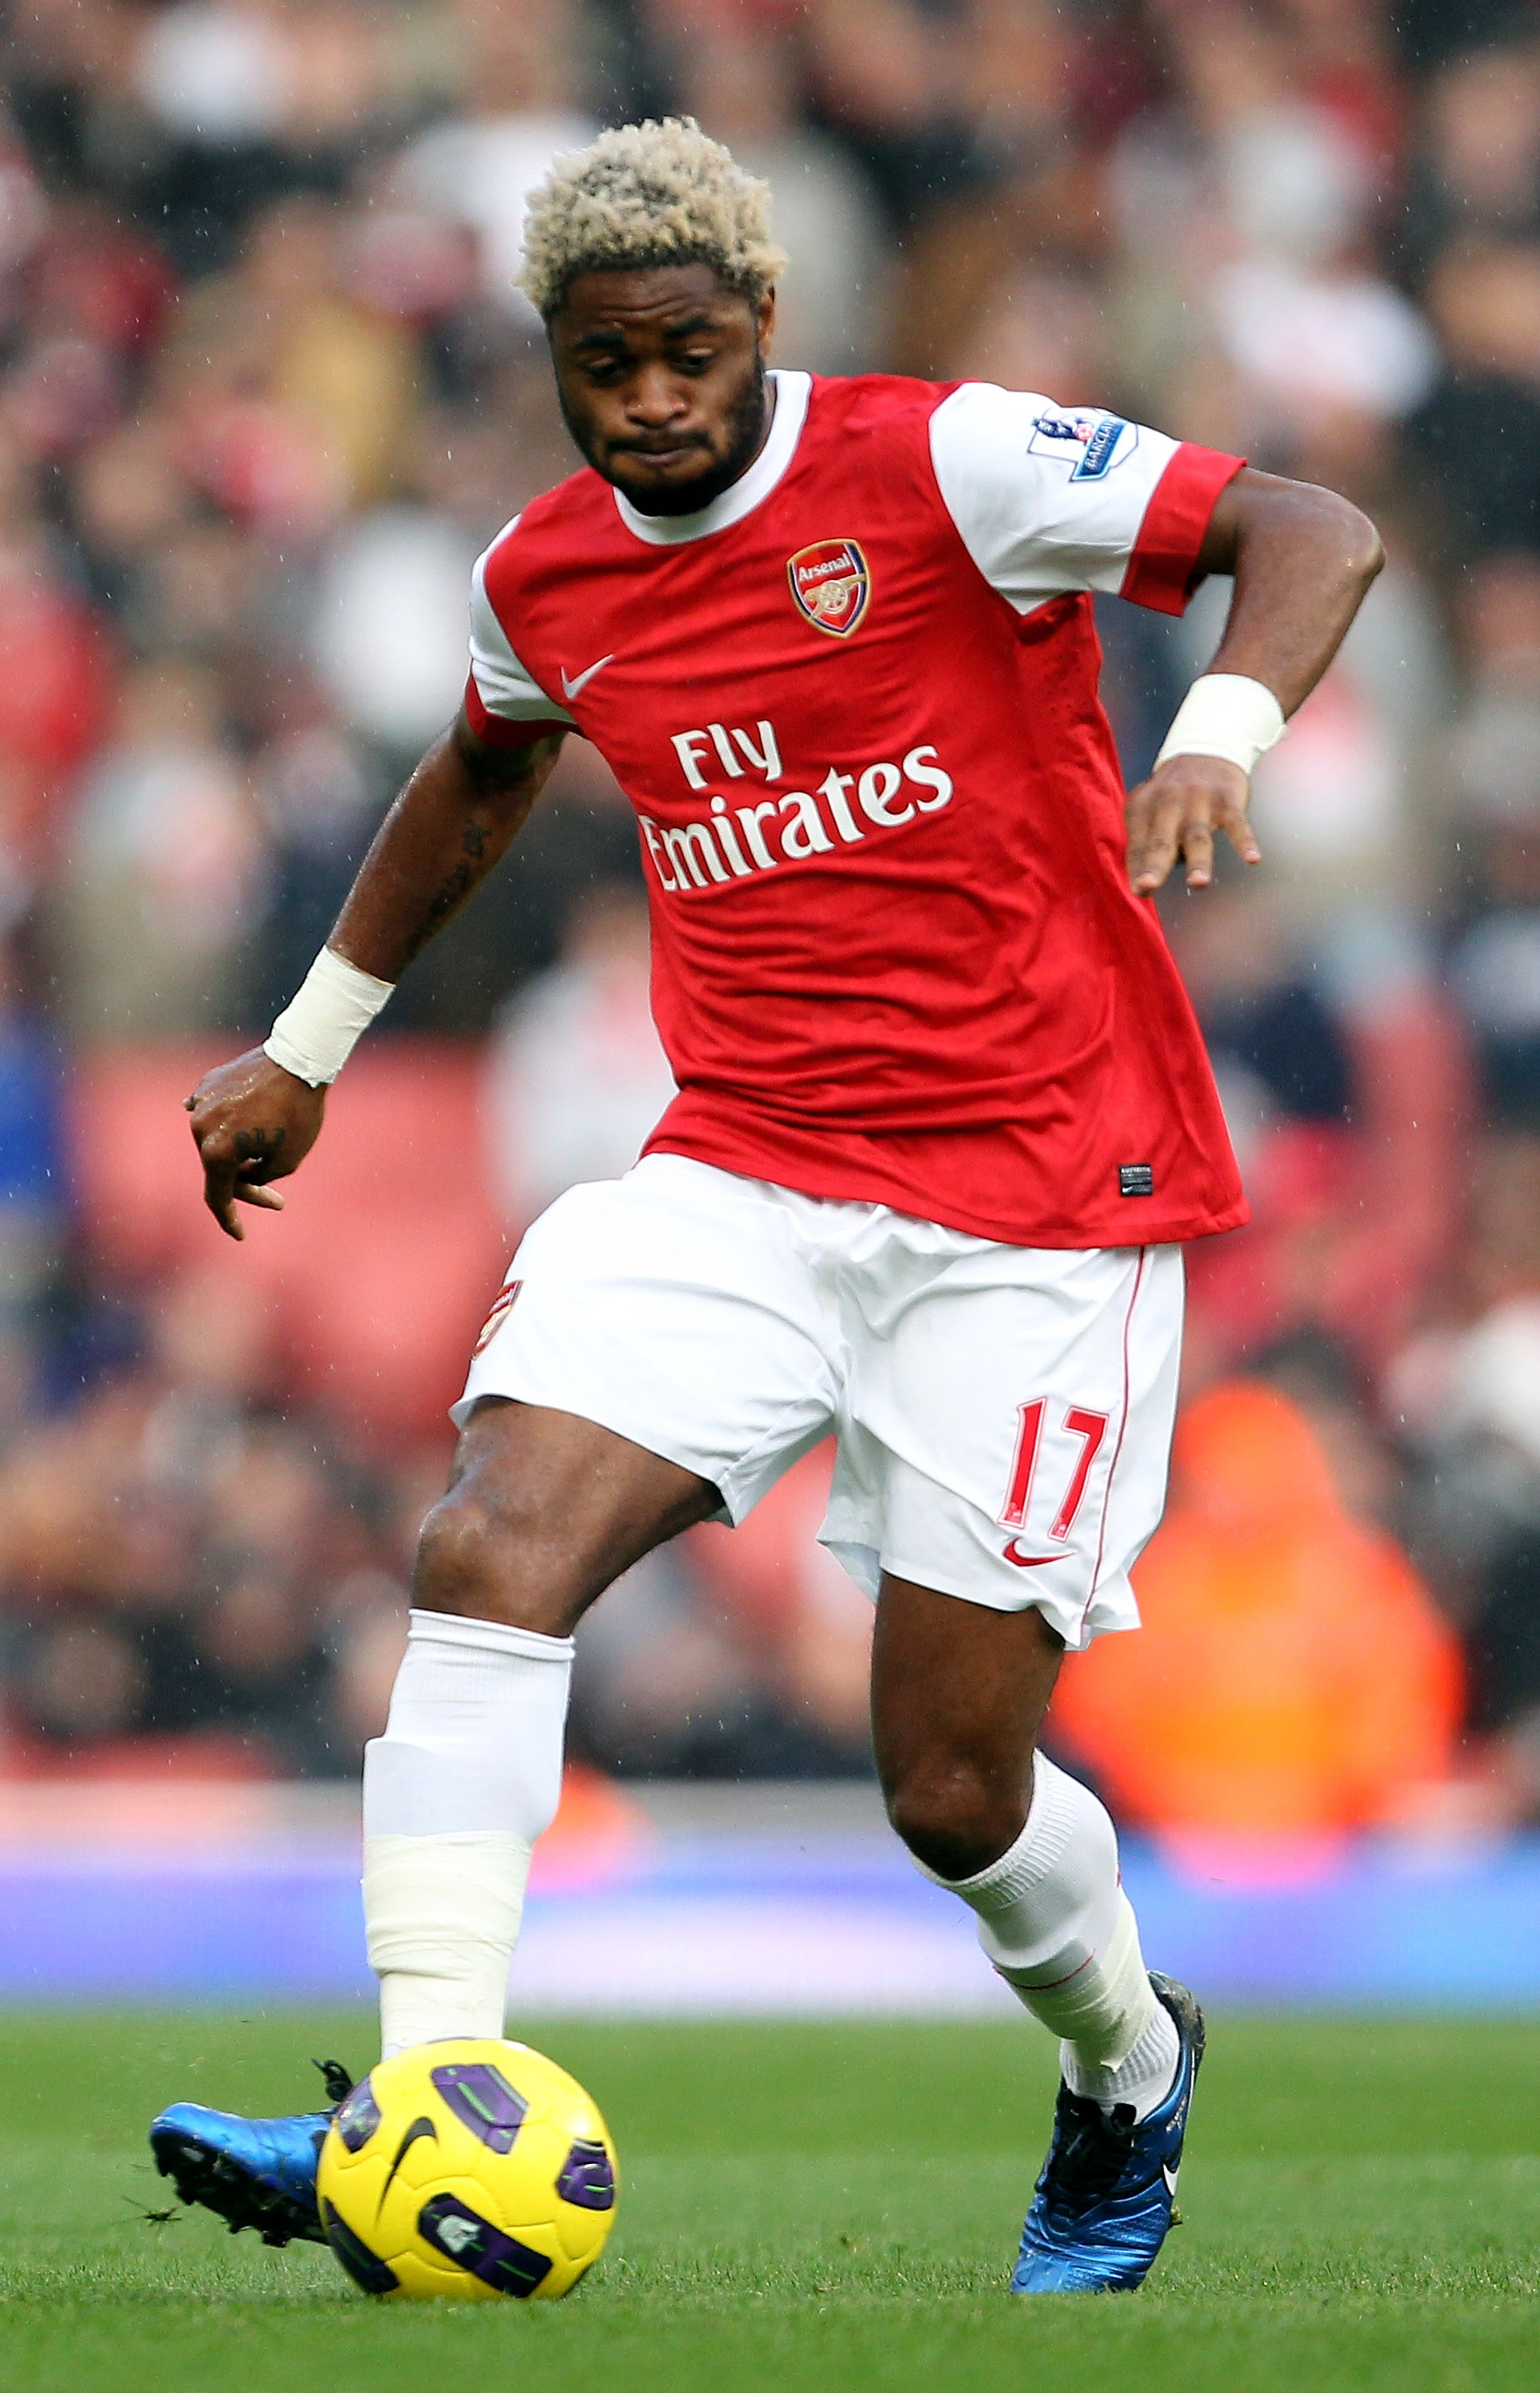 LONDON, ENGLAND - OCTOBER 30:  Alex Song of Arsenal in action during the Barclays Premier League match between Arsenal and West Ham United at Emirates Stadium on October 30, 2010 in London, England.  (Photo by Clive Rose/Getty Images)